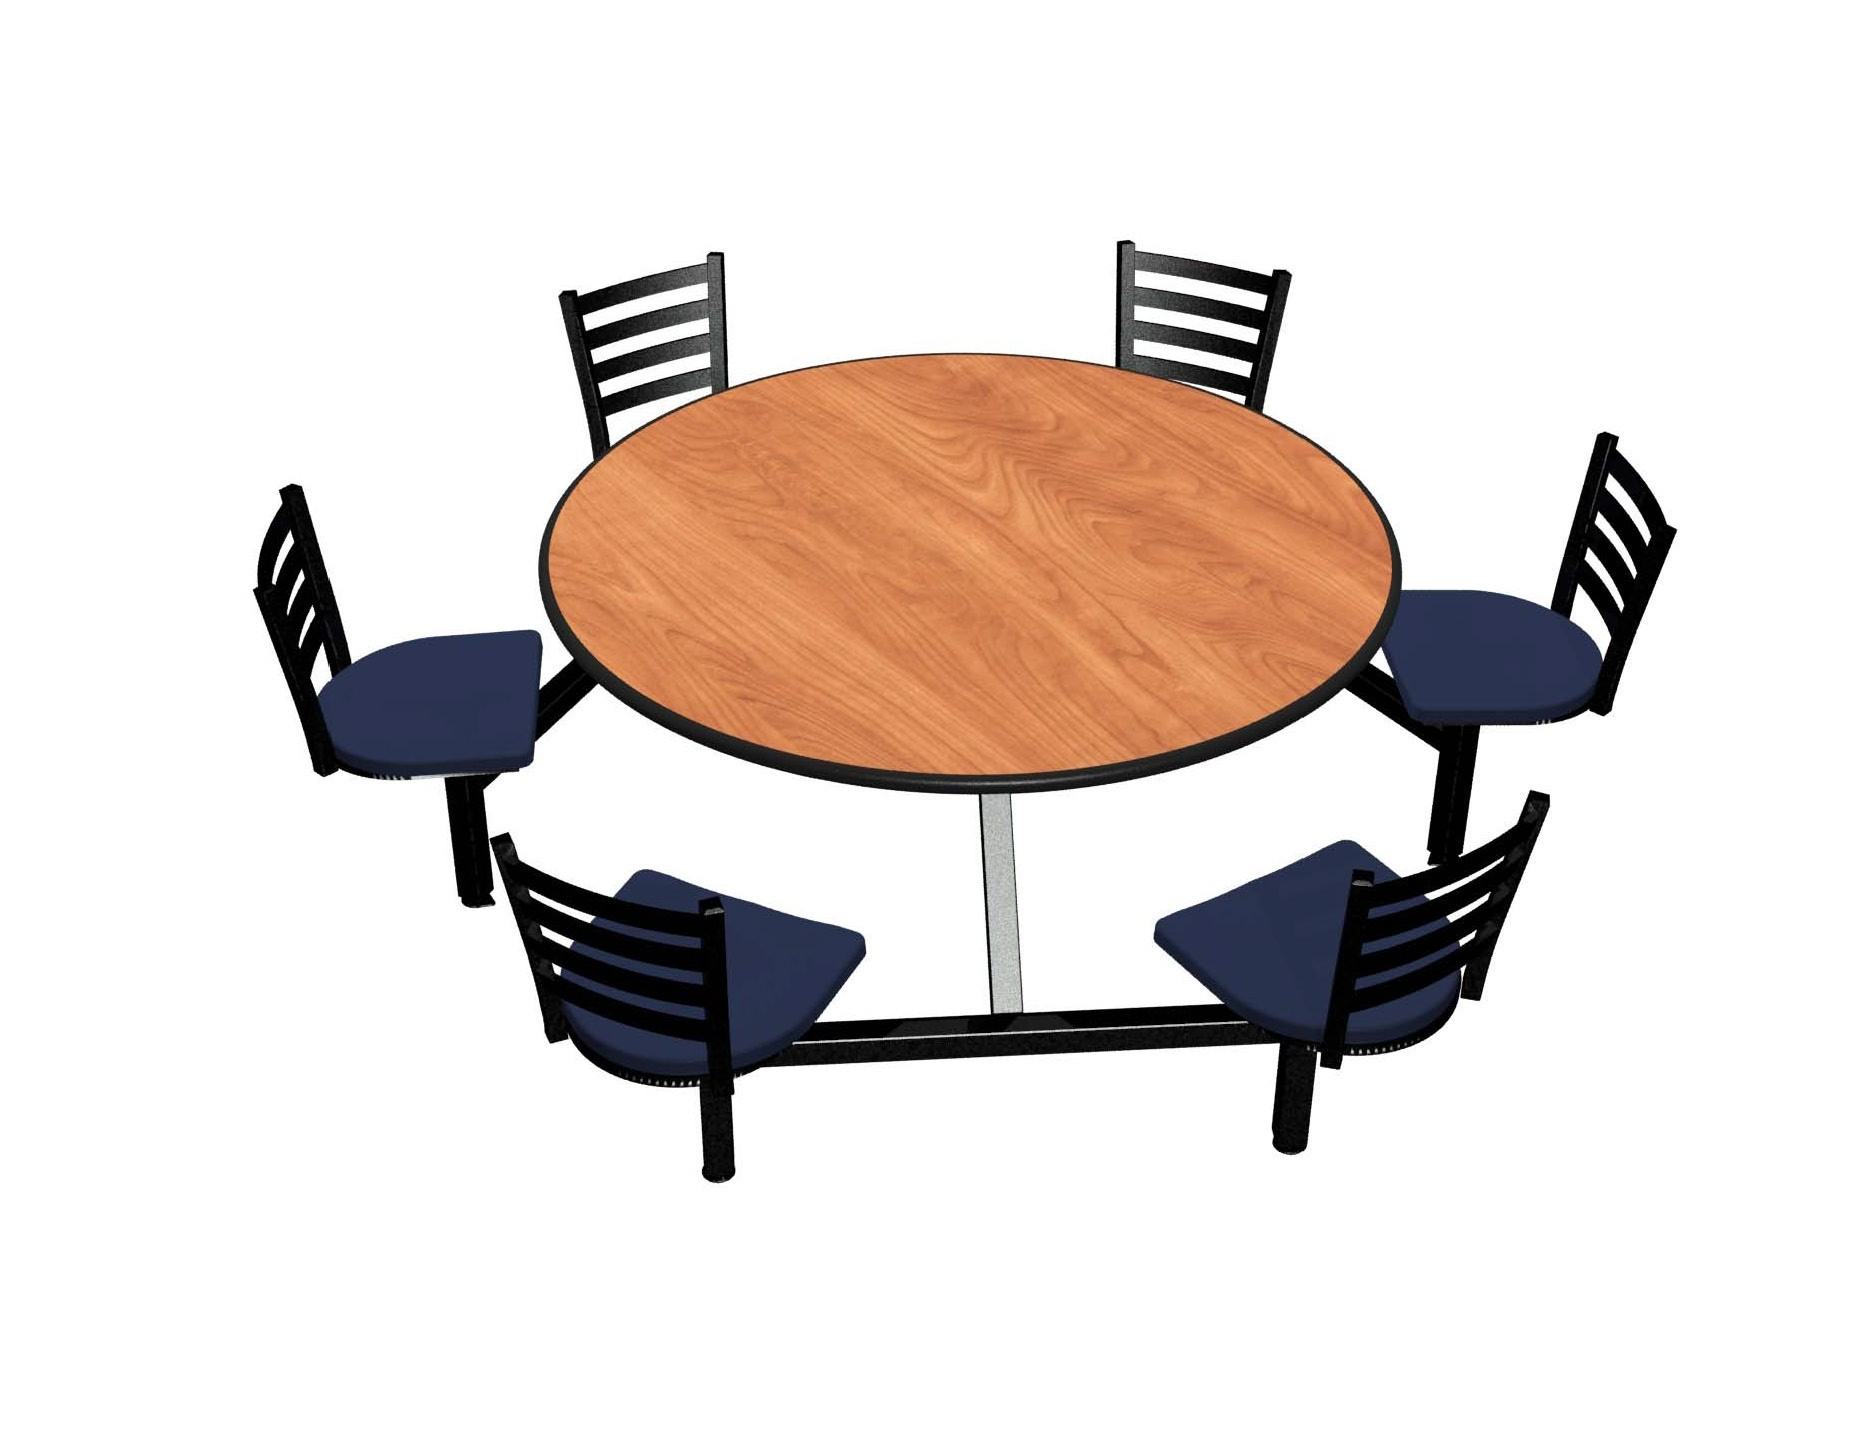 Wild Cherry laminate table top, Black Dur-A-Edge®, Encore chairhead with Atlantis seat